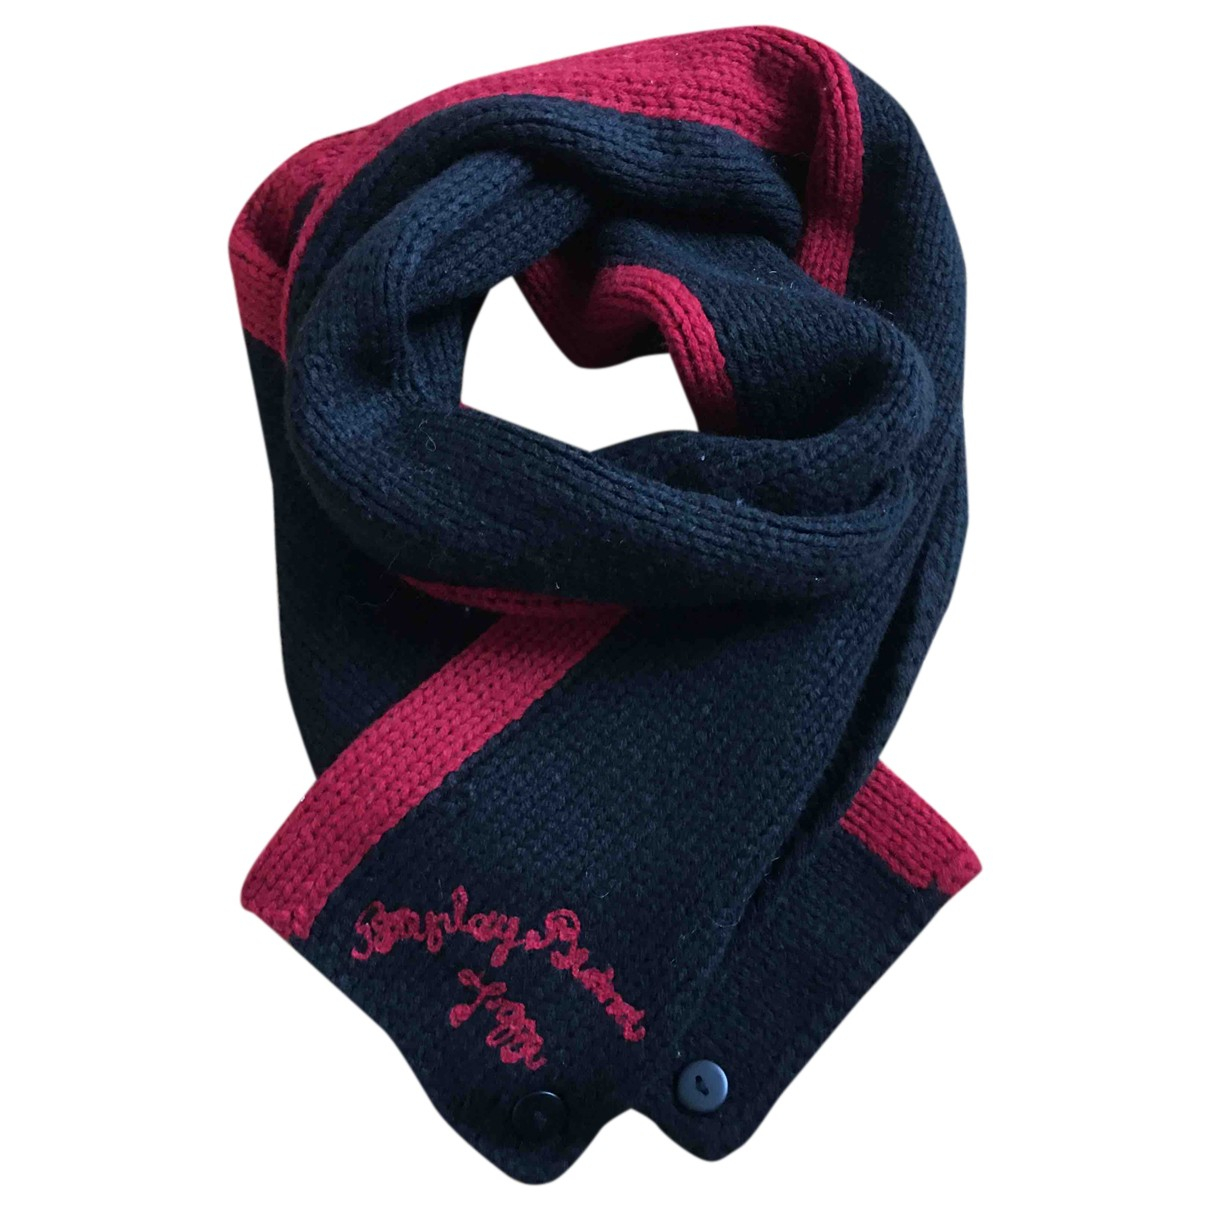 Replay N Black Wool scarf & pocket squares for Men N